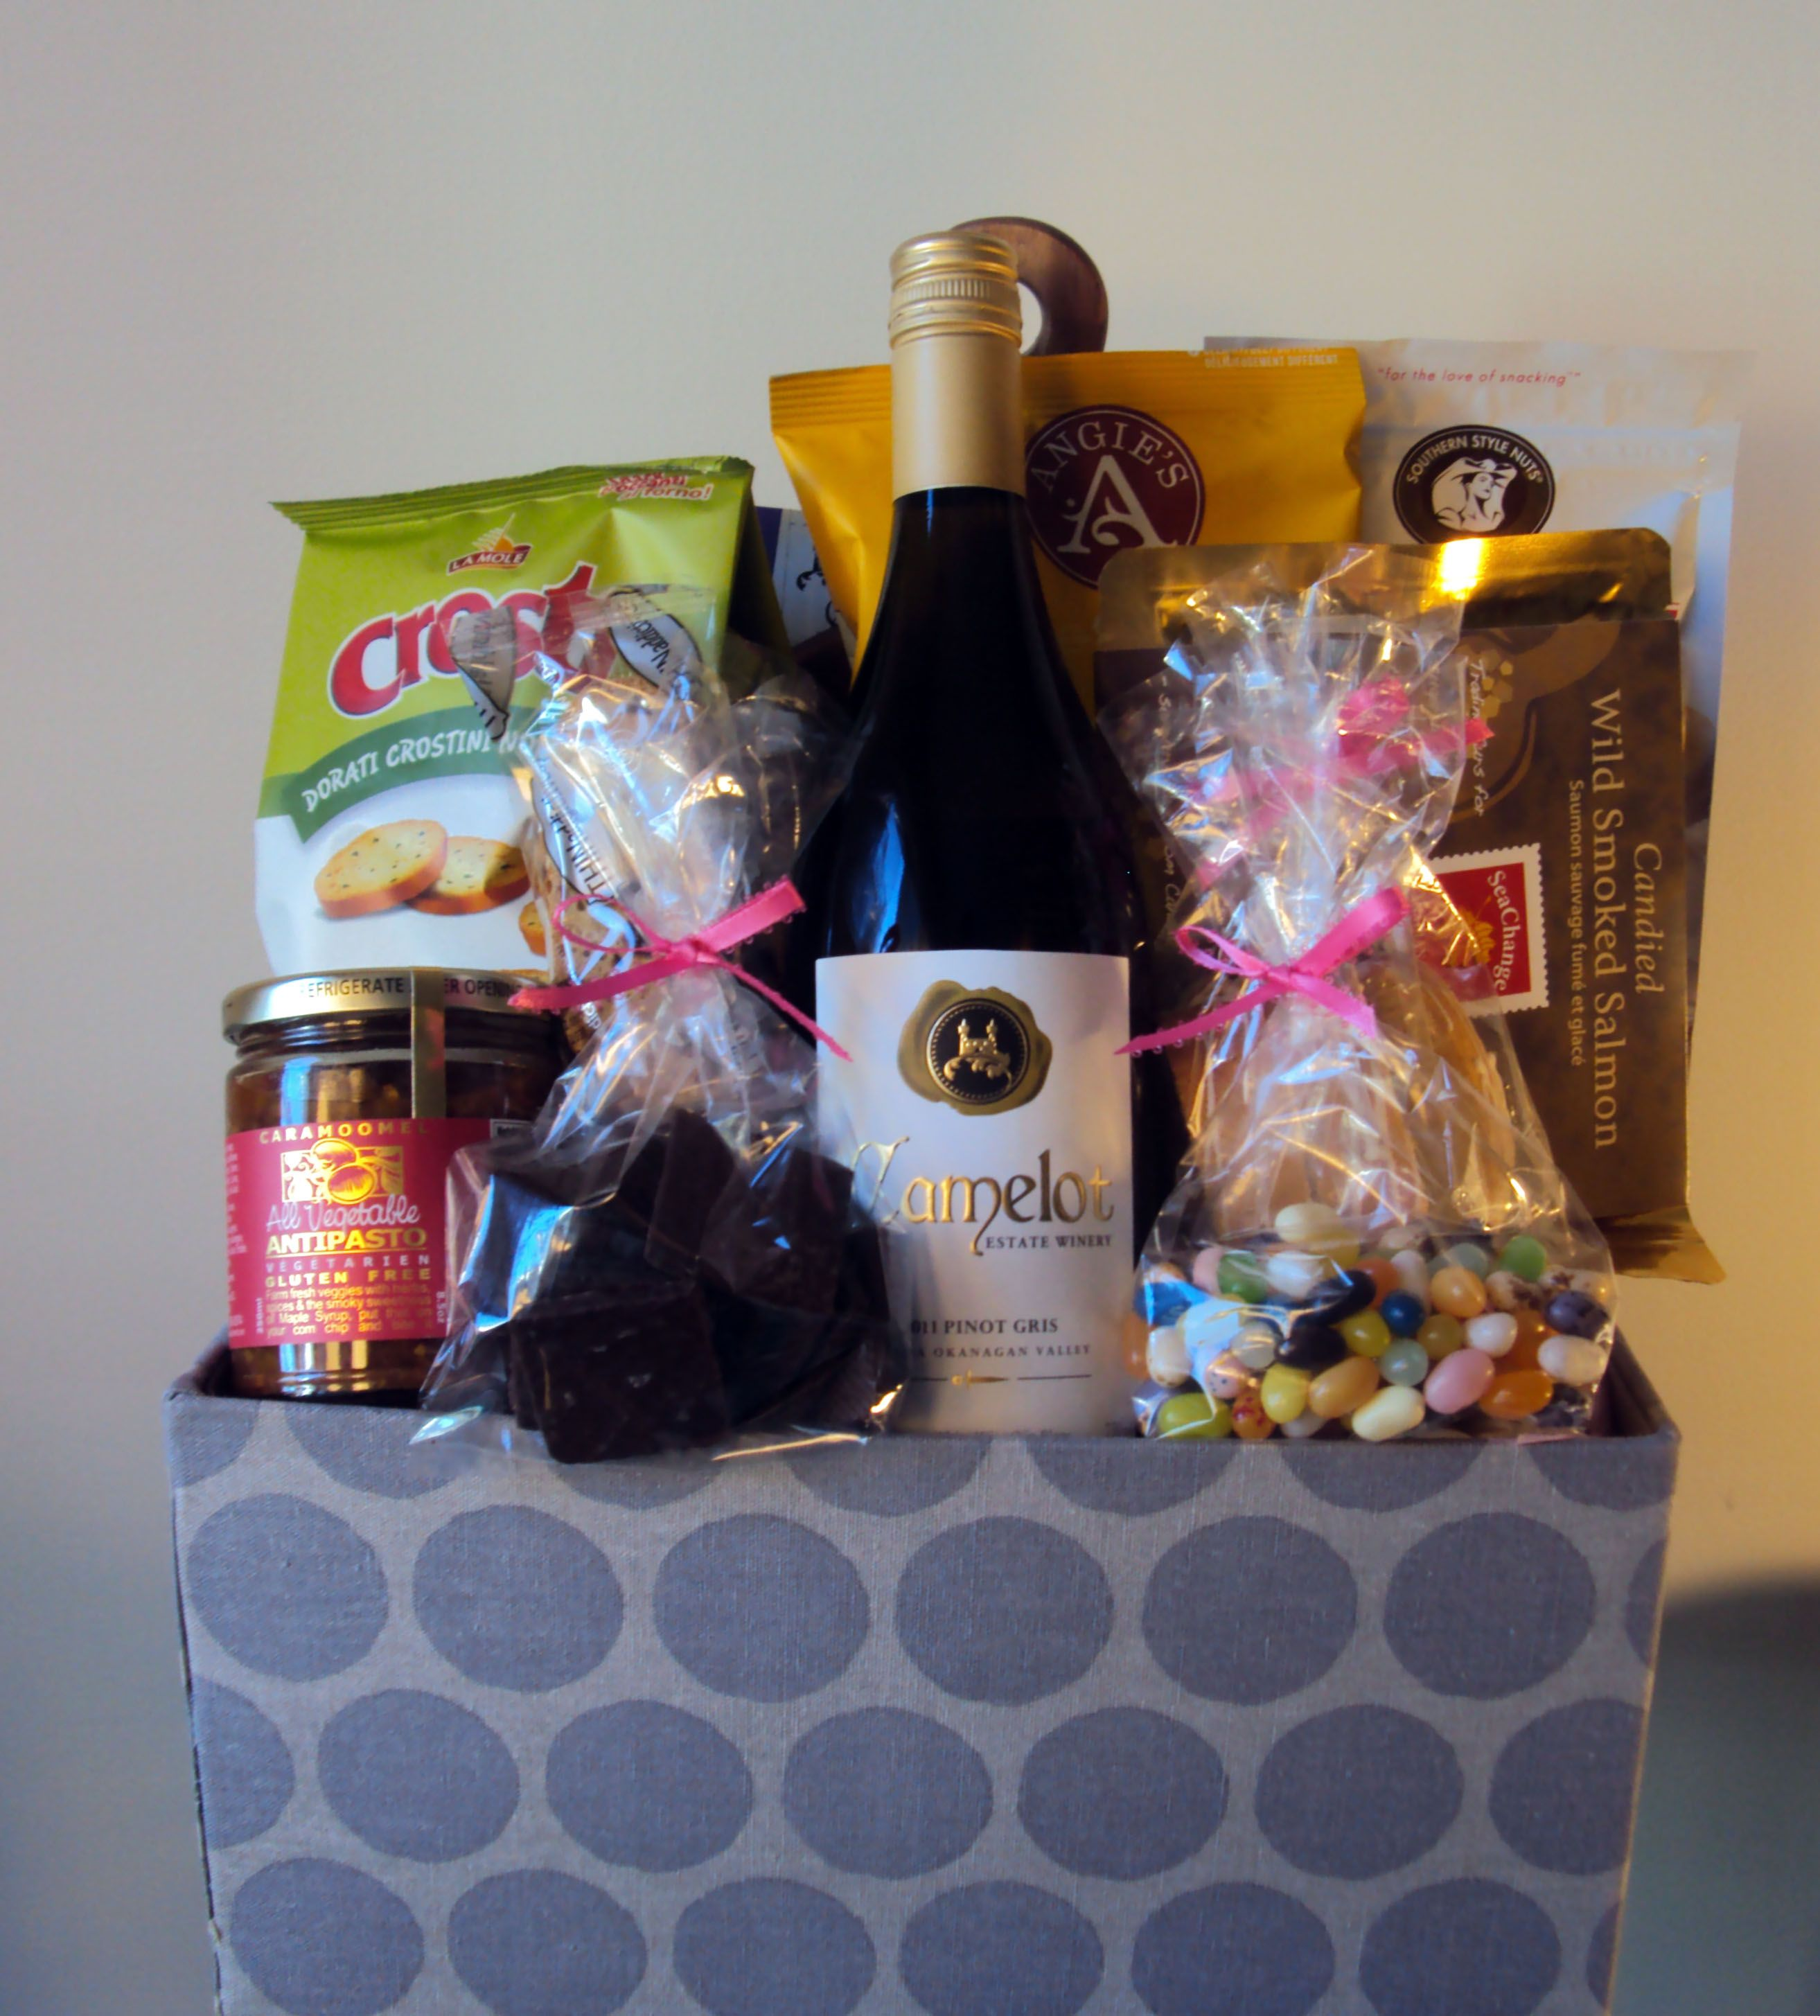 Camelot vineyards wine gifts wine gift baskets gift